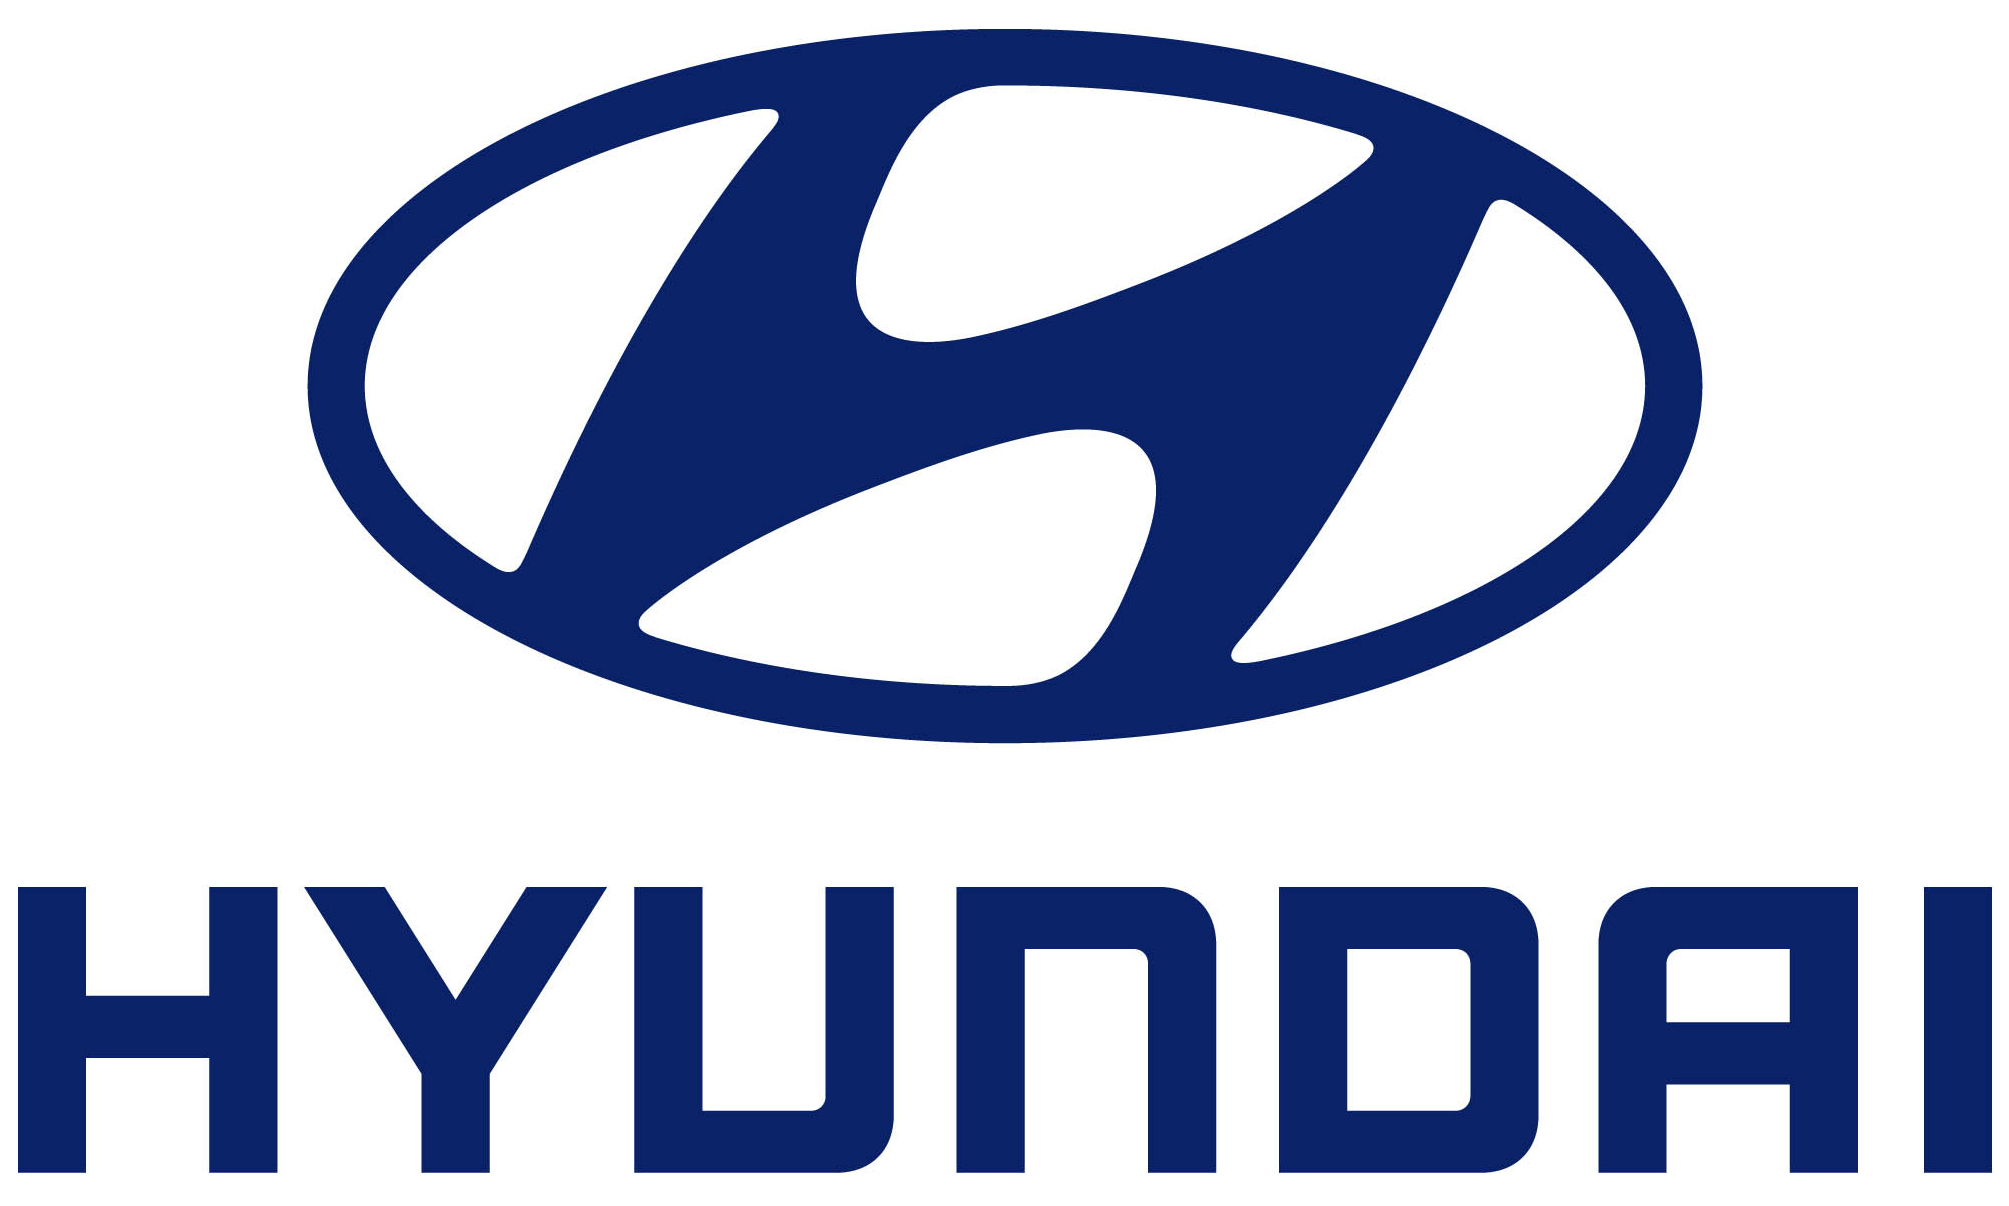 Hyundai Logo Huyndai Car Symbol Meaning And History Car Brand Names Com